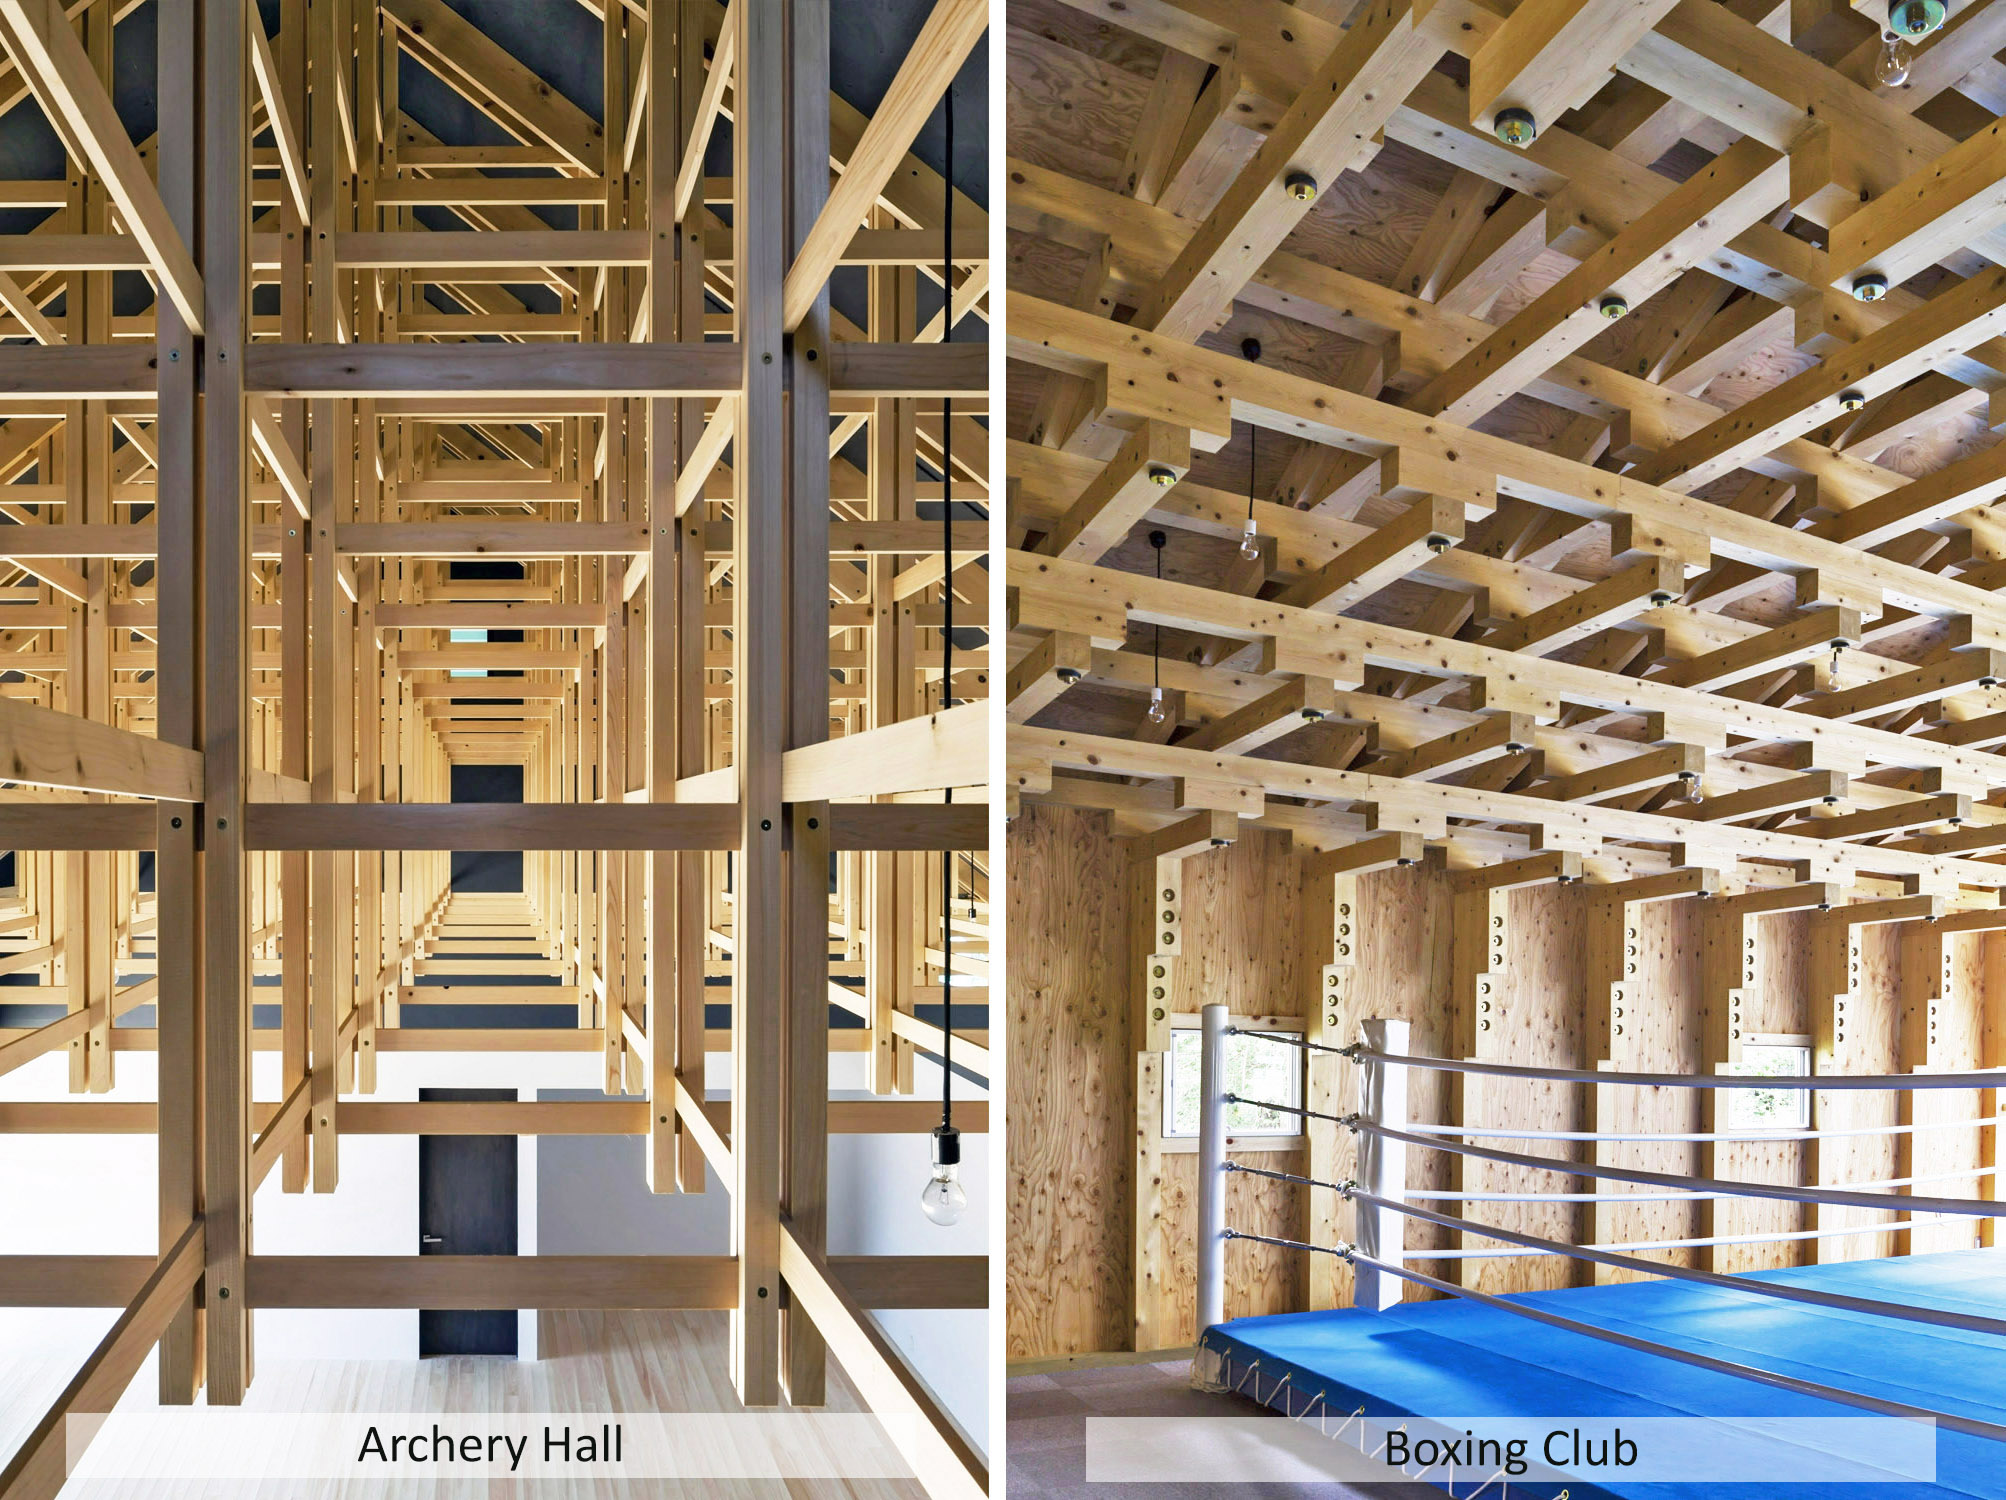 Archery hall & Boxing club - FT architects